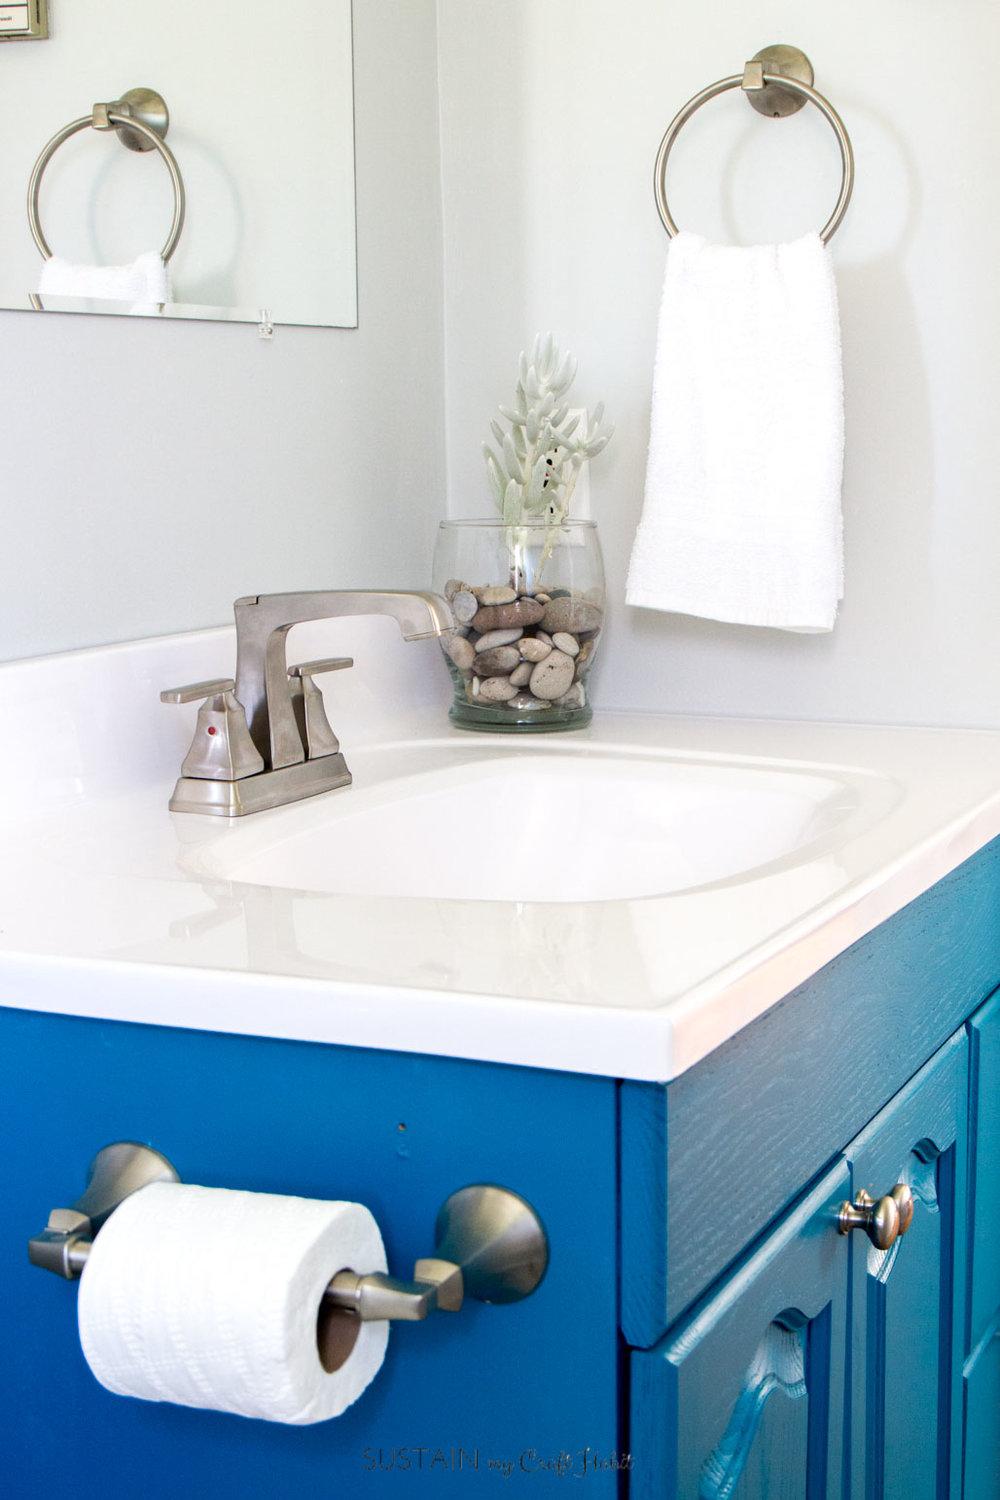 These fixtures from Delta Faucet Canada's Ashlyn Collection are perfect in this coastal style small bathroom remodel. Click through for more beach theme bathroom DIY ideas! [sponsored]